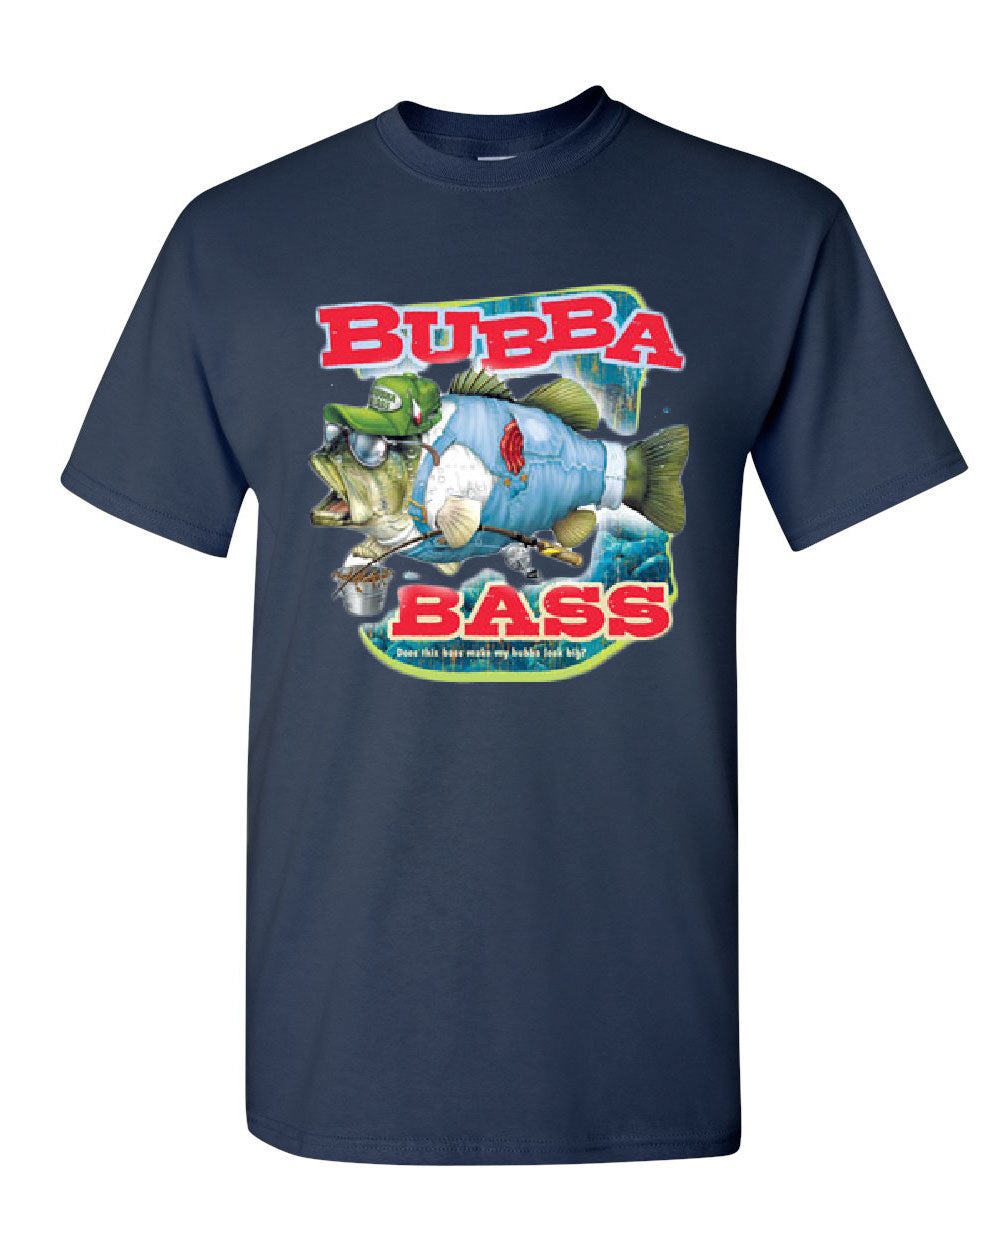 Bubba bass t shirt funny fishing tee shirt ebay for Funny fishing shirts